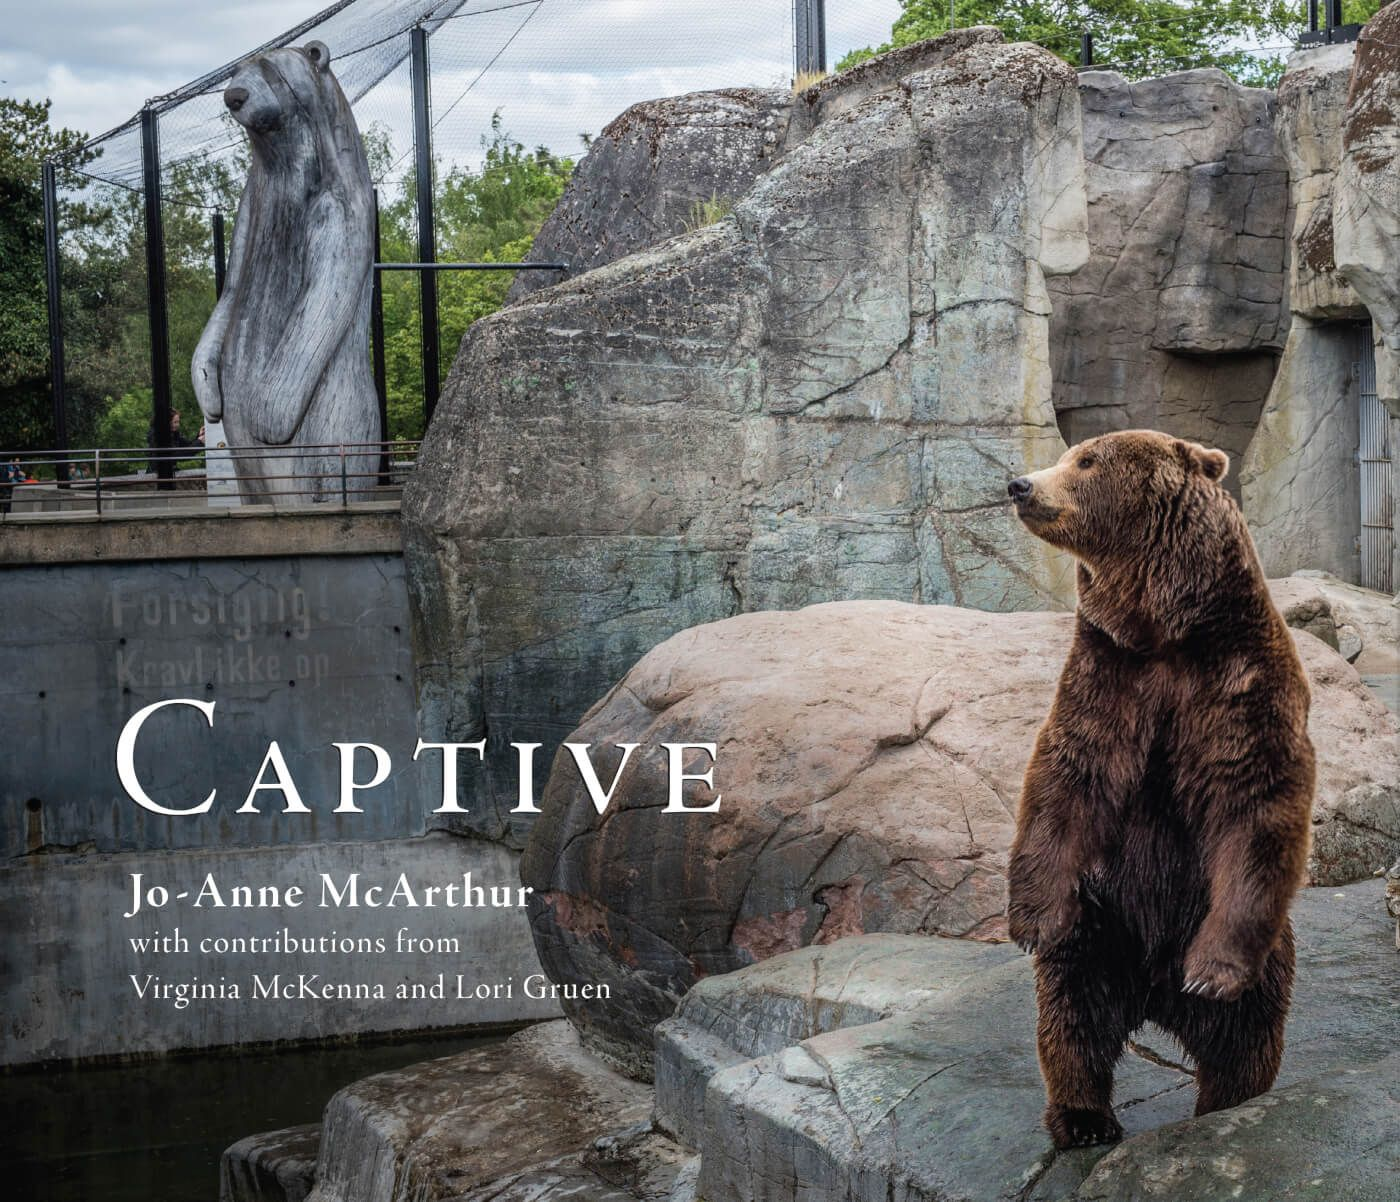 These Devastating Images of Captive Animals Will Break